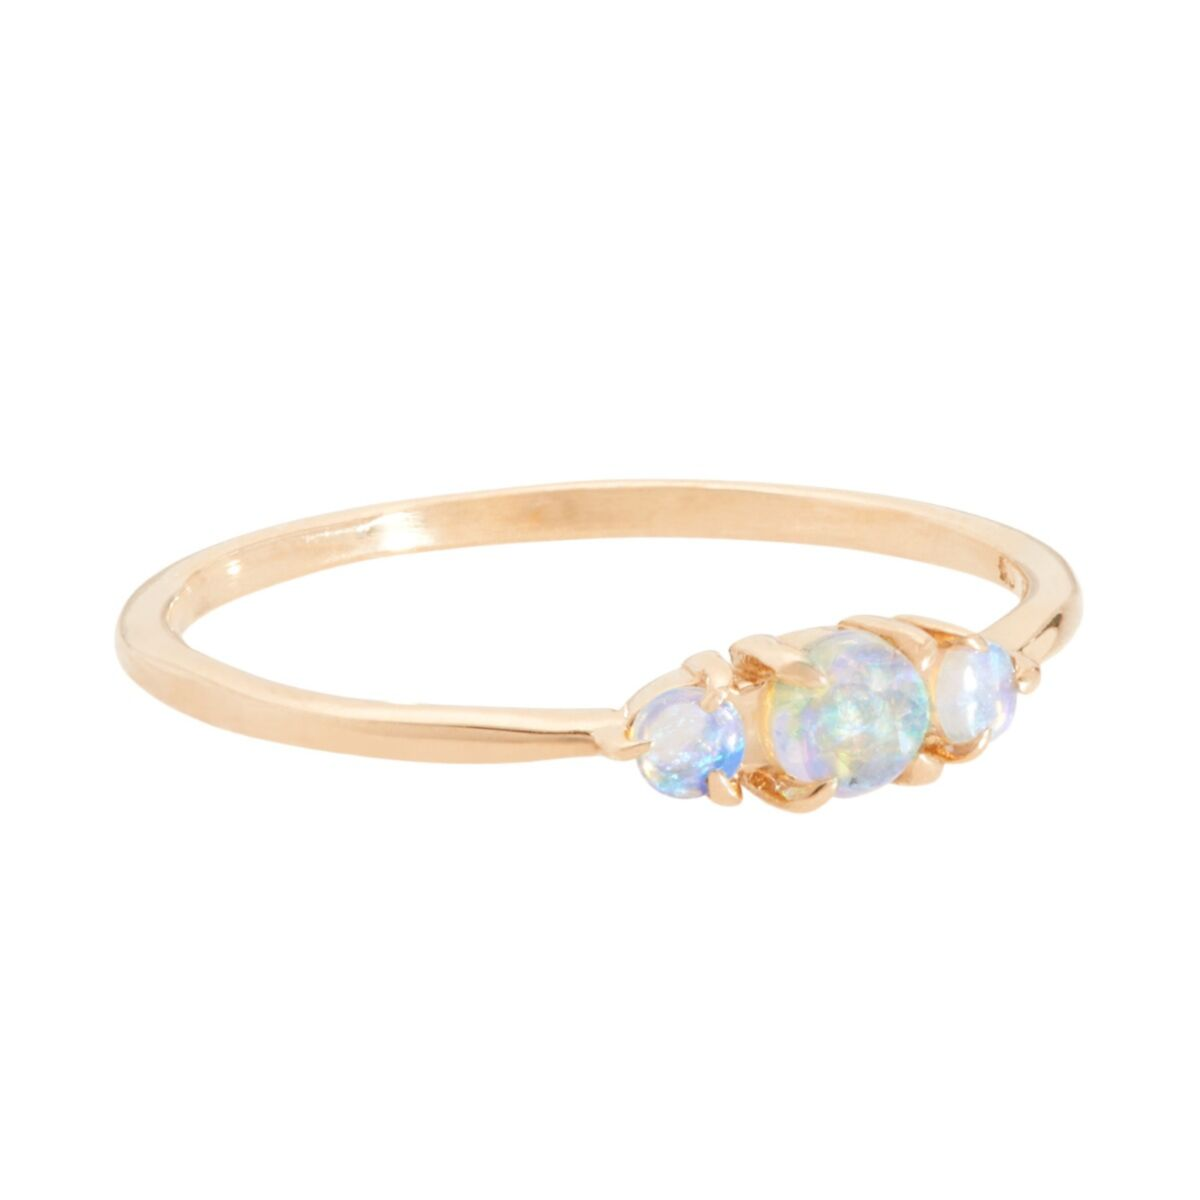 Sleeping Beauty Ring, Opal image